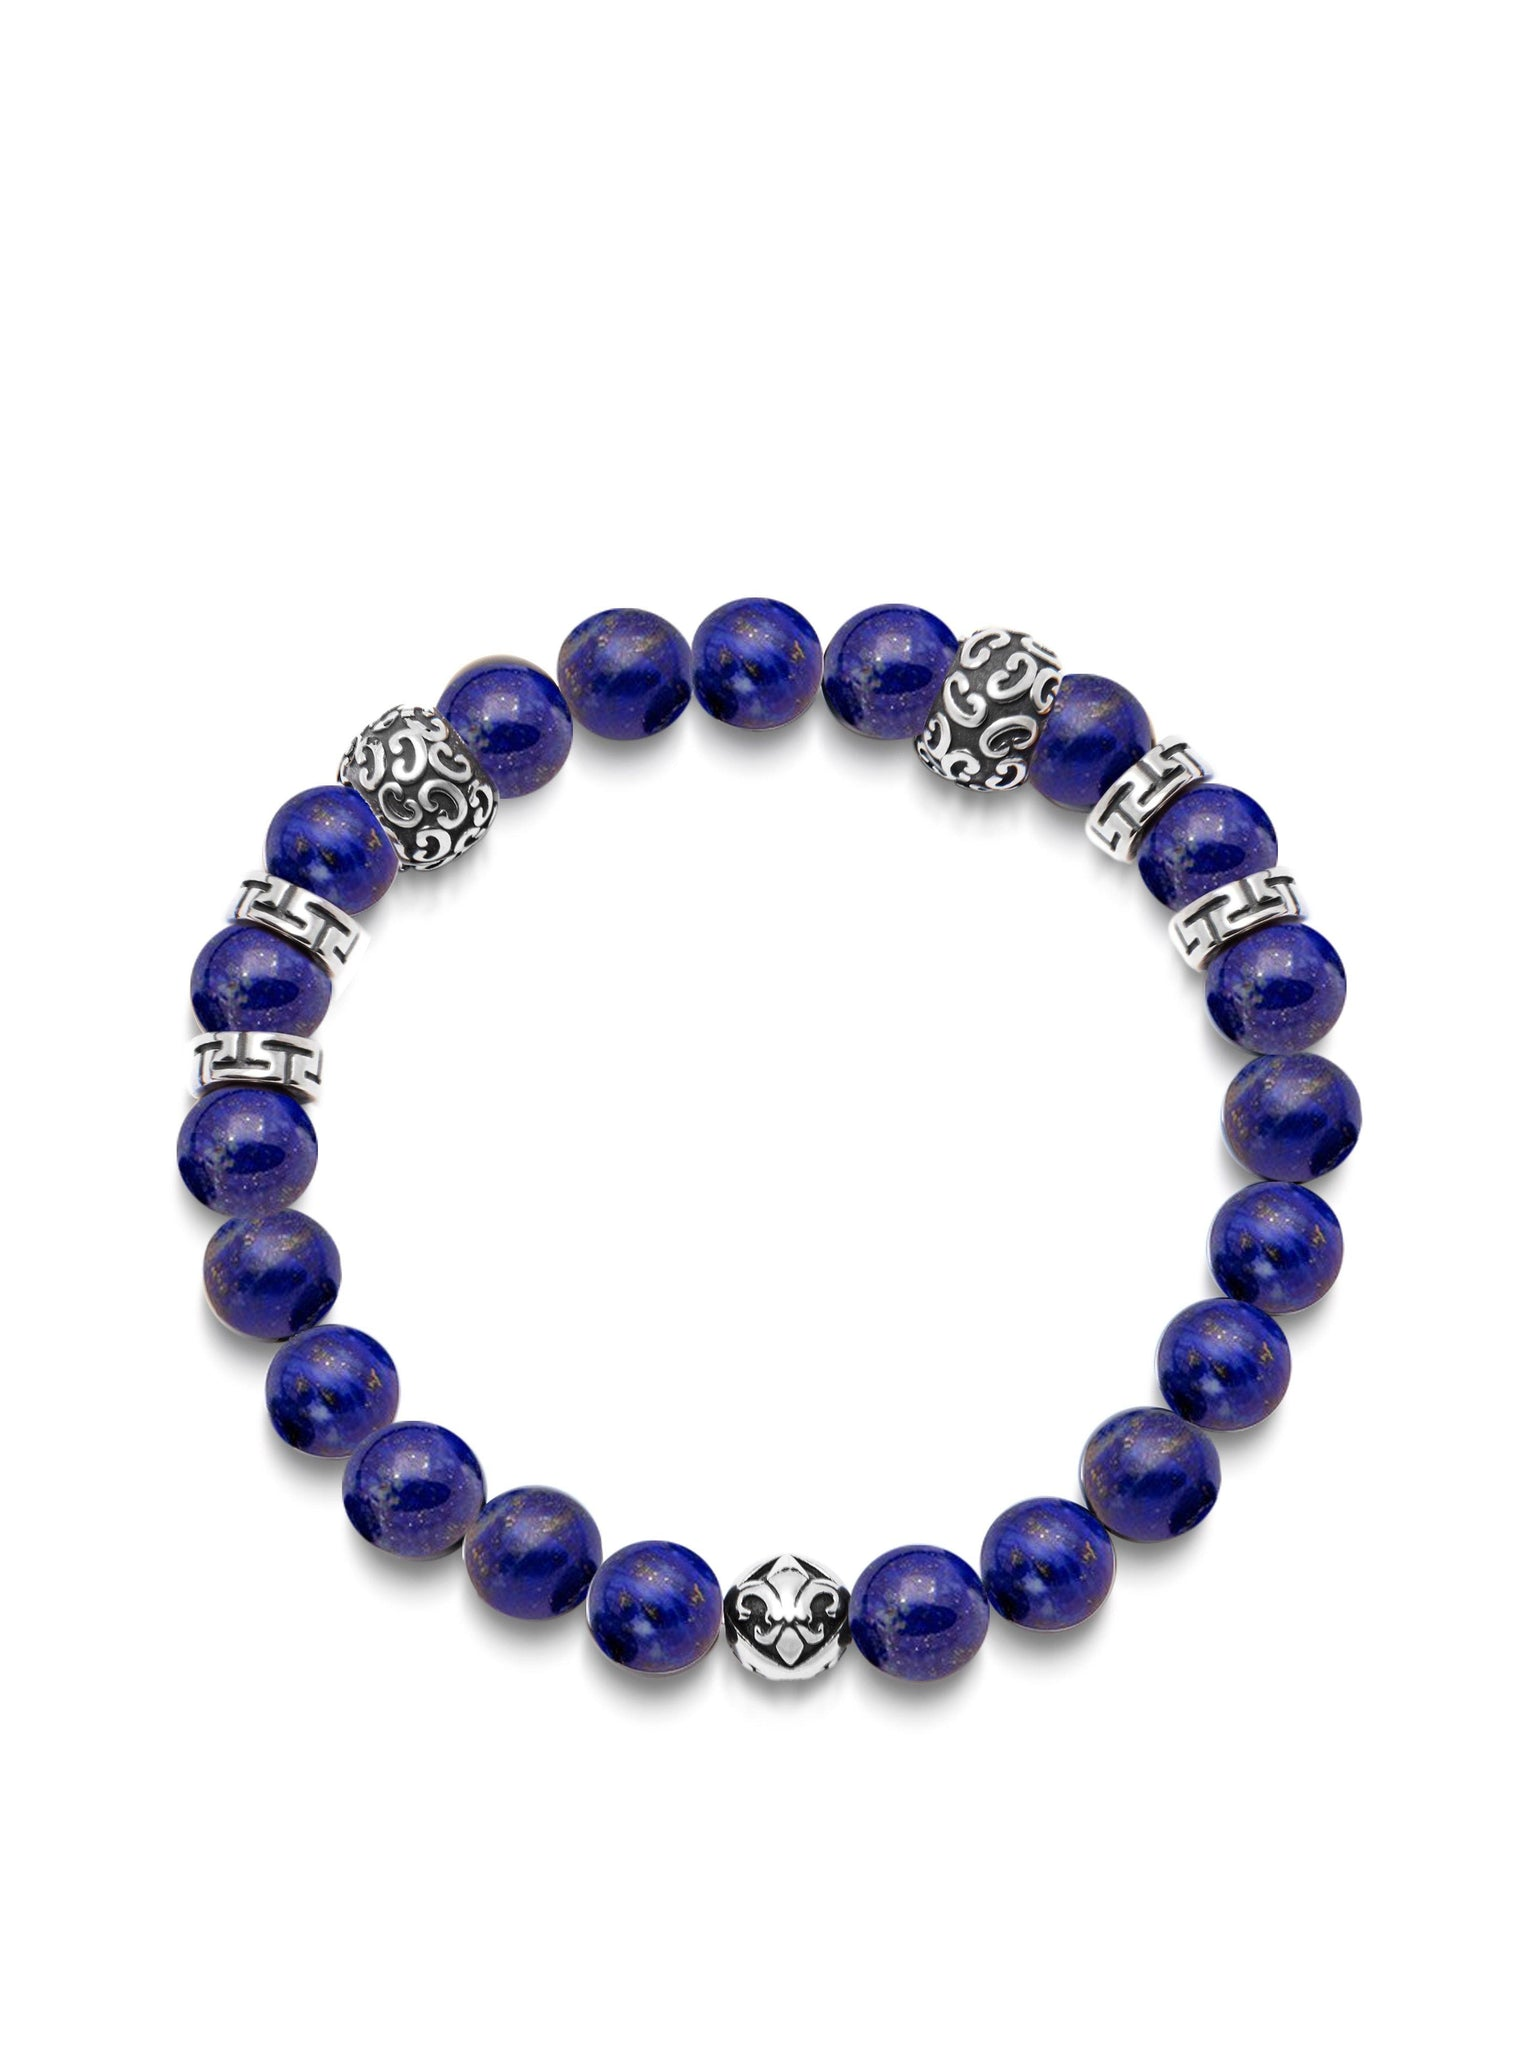 THE 10 YEAR ANNIVERSARY COLLECTION - Men's Wristband with 8MM Blue Lapis and Silver